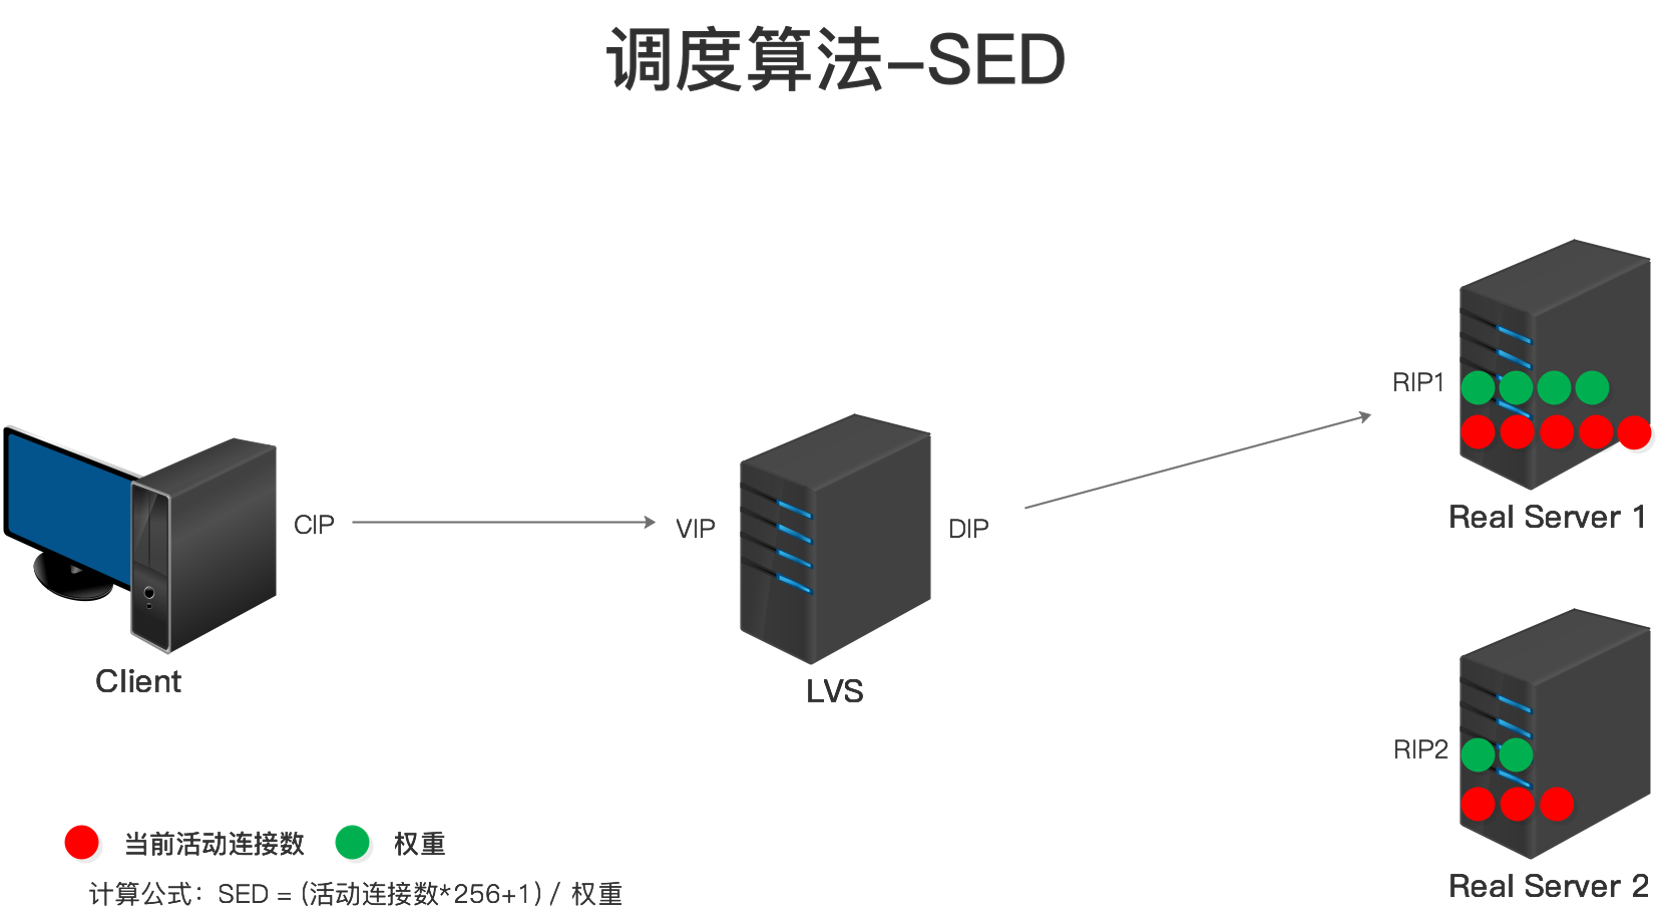 LVS调度算法-SED.png